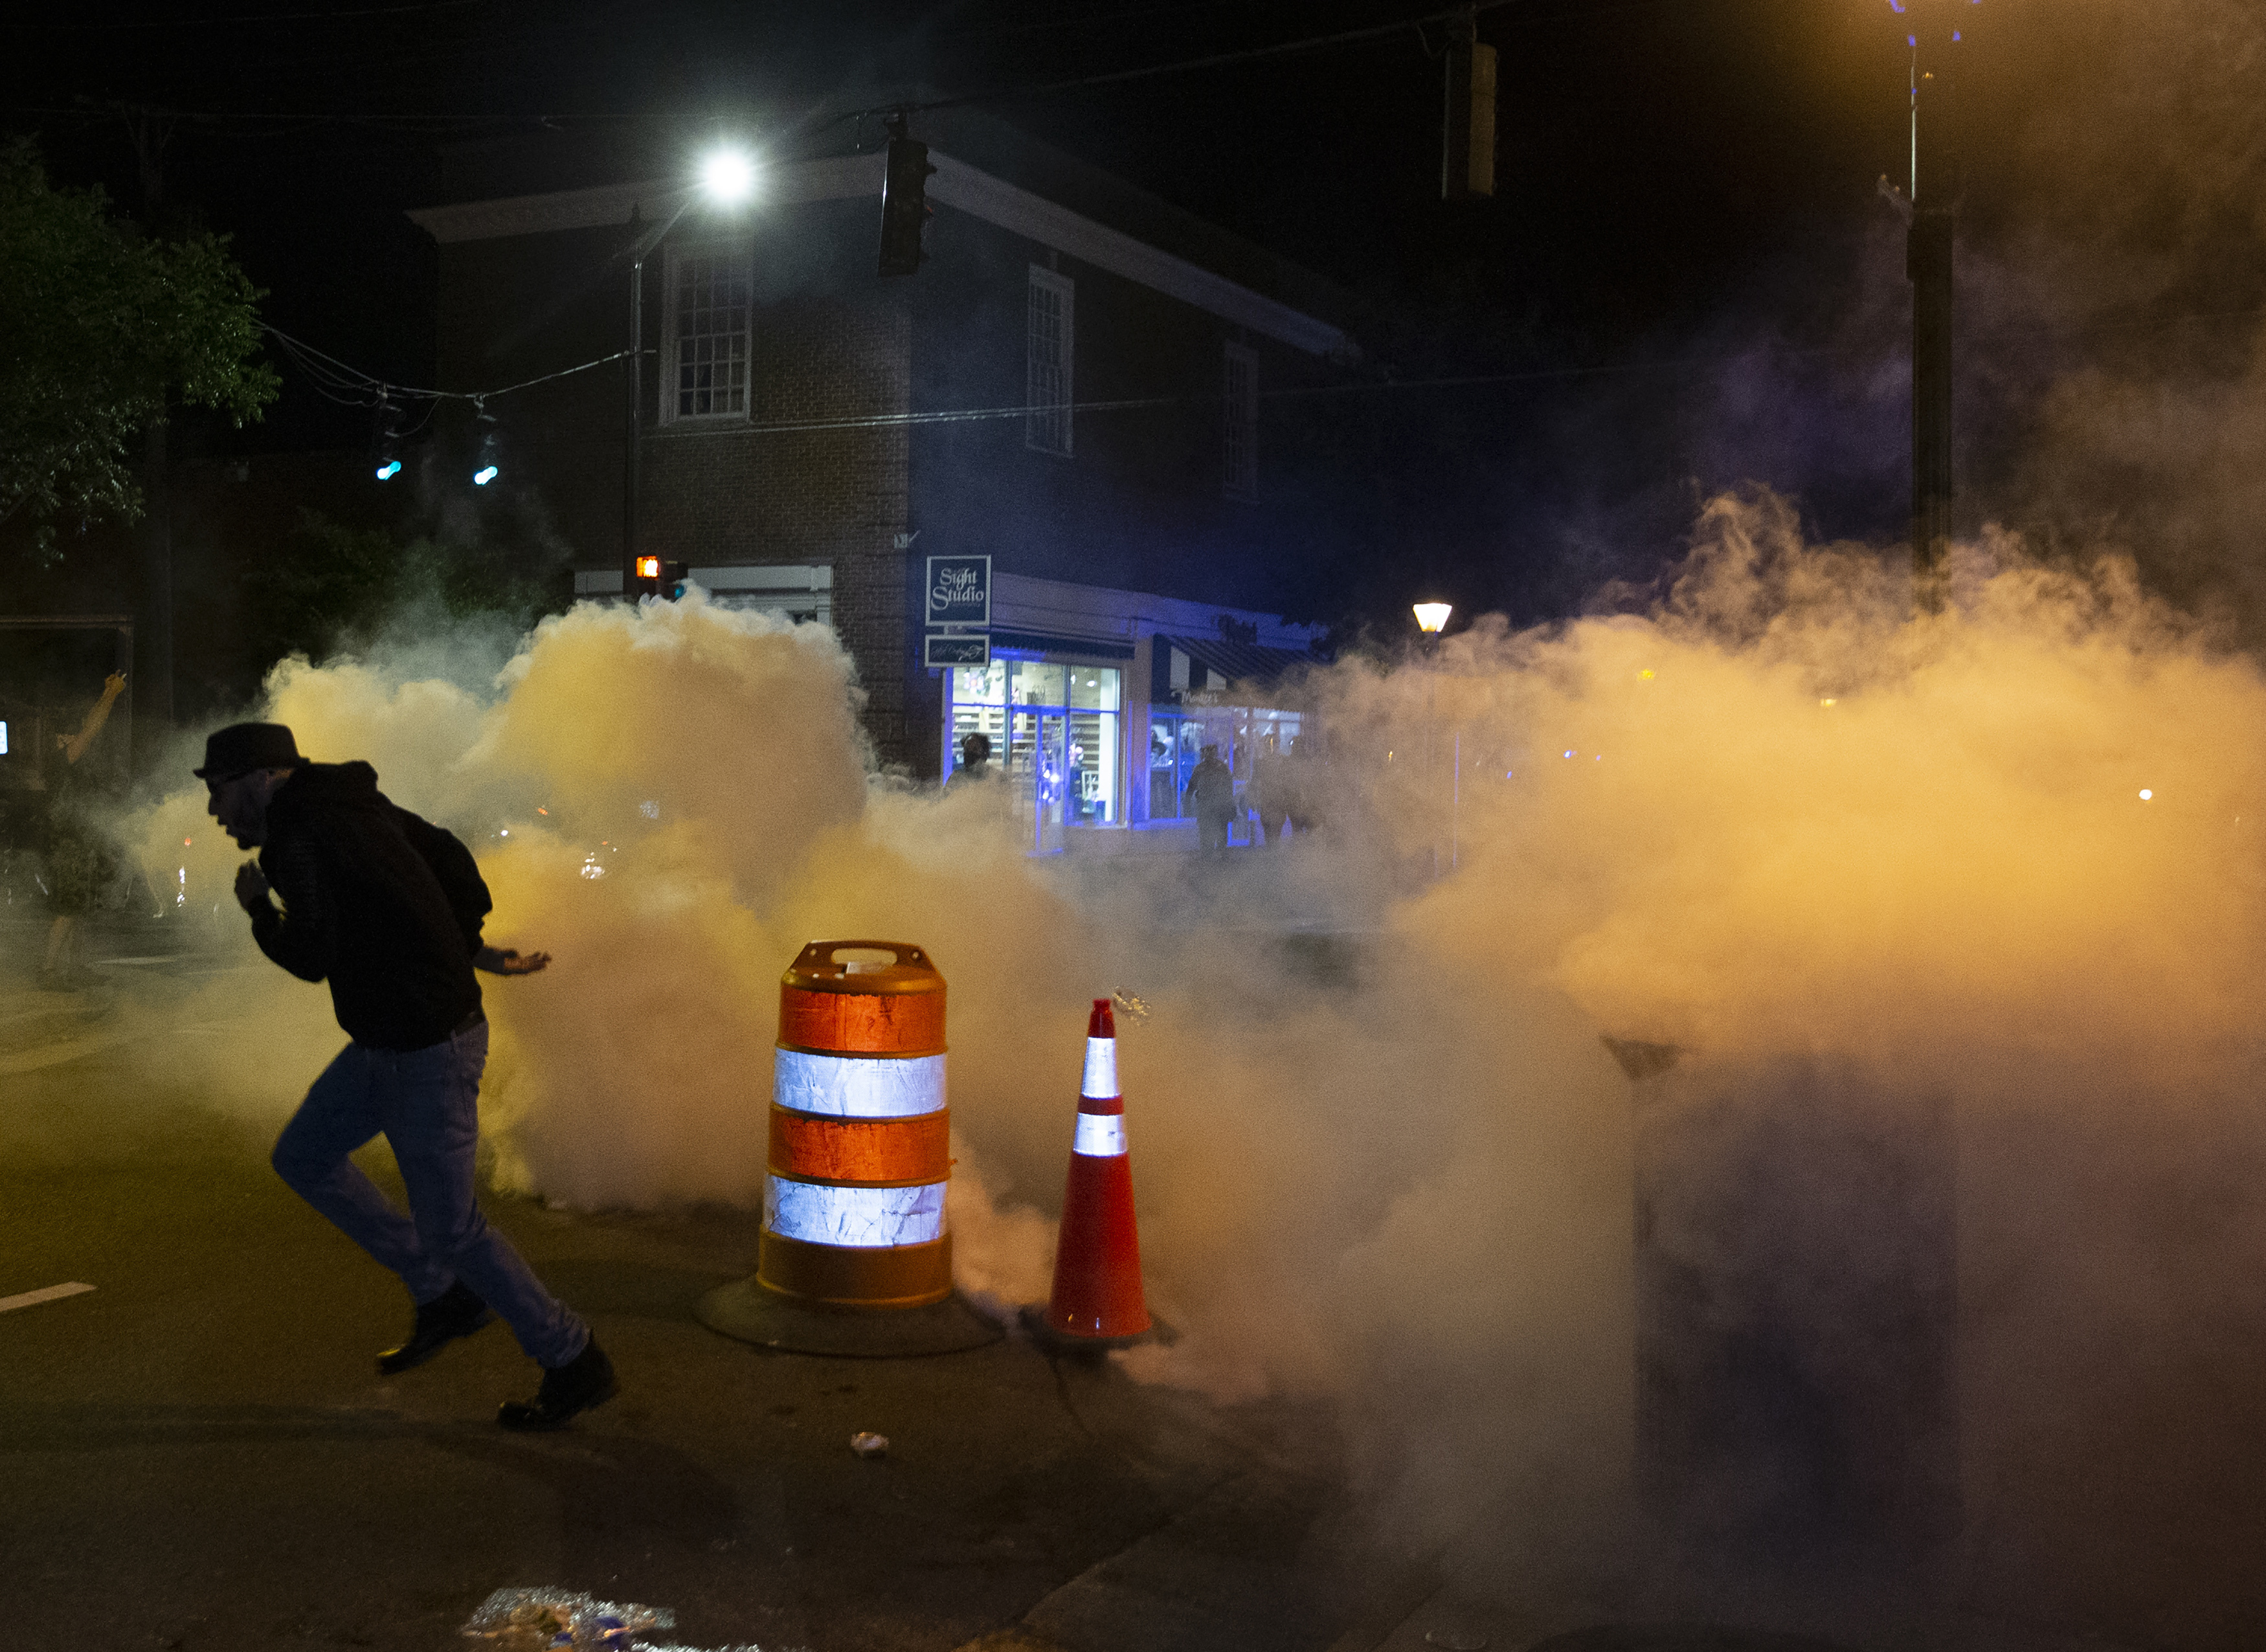 A protester runs after placing a construction barrel on top of a gas grenade in downtown Fredericksburg, Va. on Sunday, May 31, 2020. (Mike Morones/The Free Lance-Star via AP)